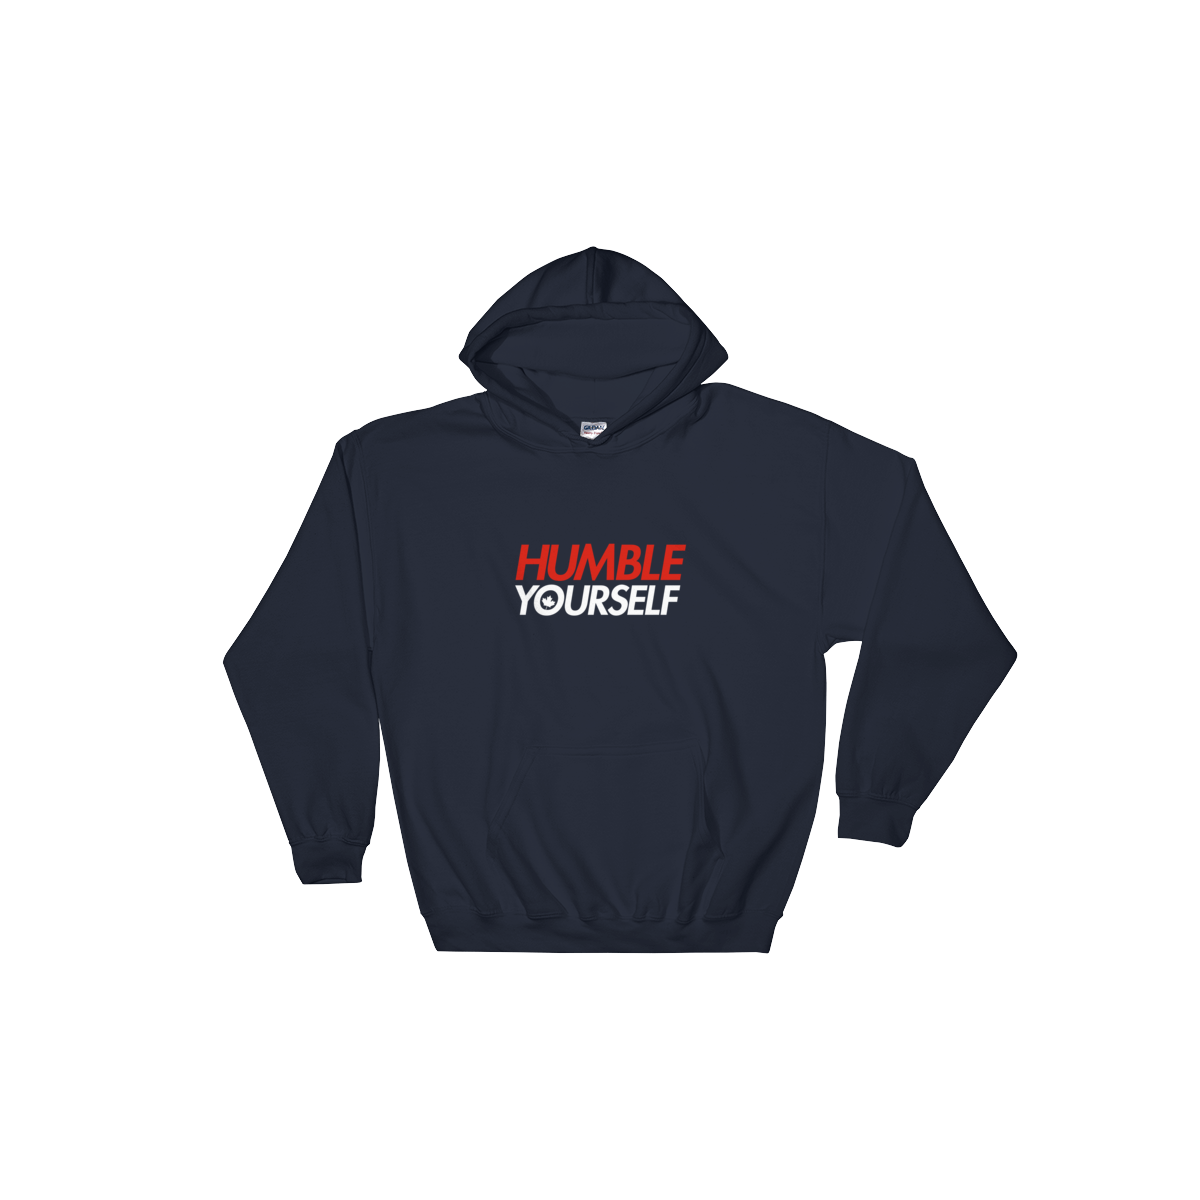 Humble Yourself | Hooded Sweatshirt